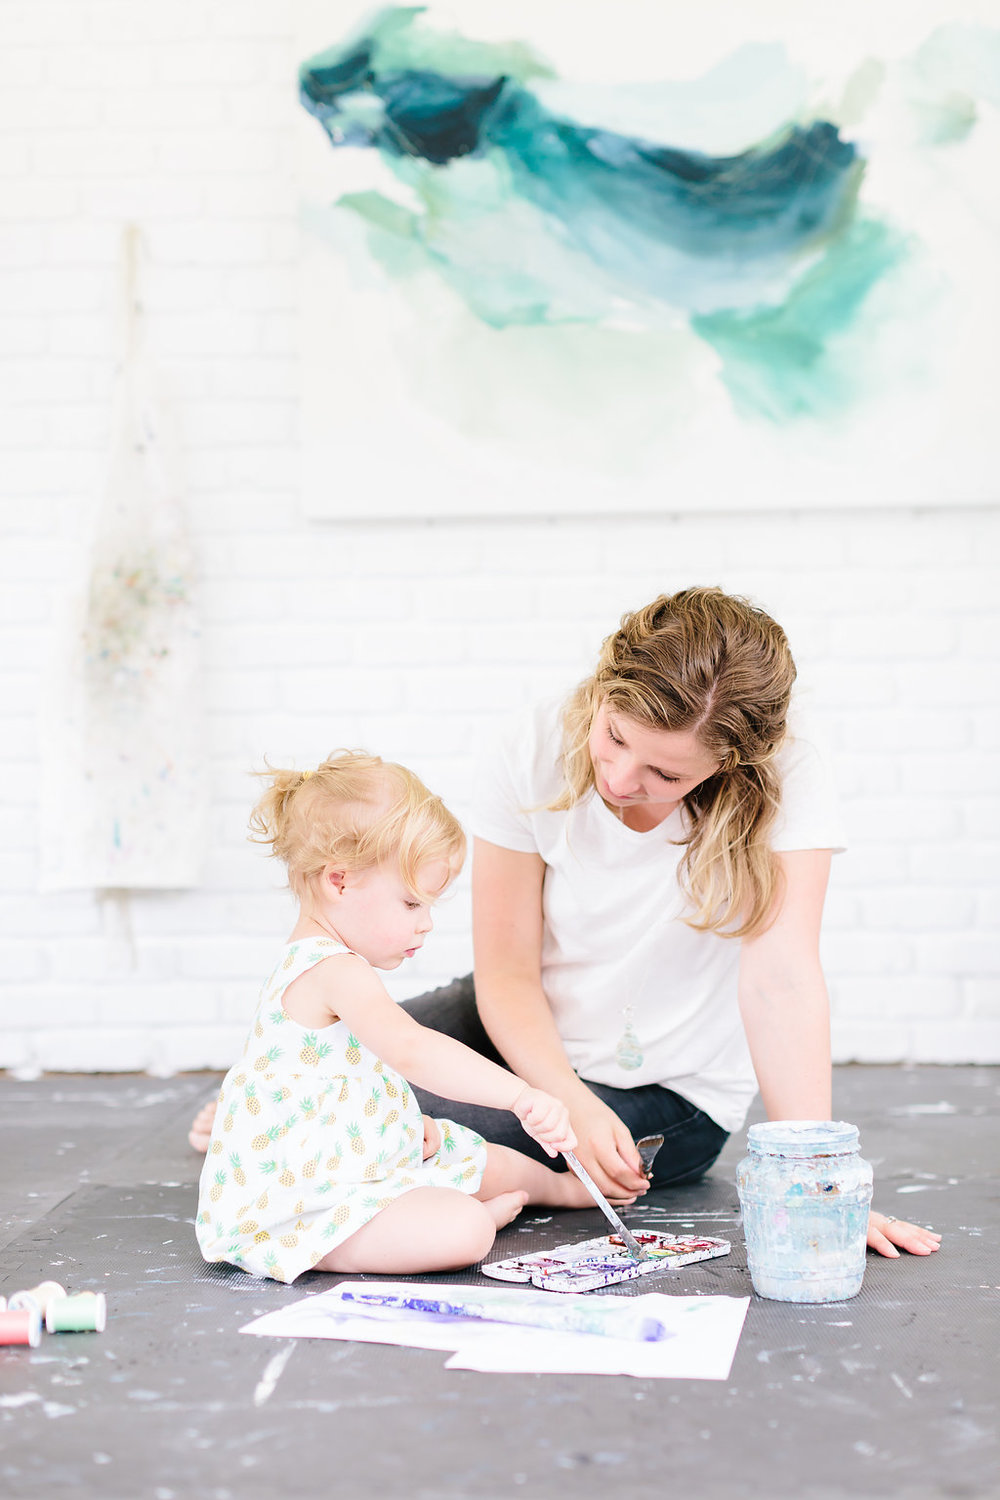 Artist and daughter in the art studio